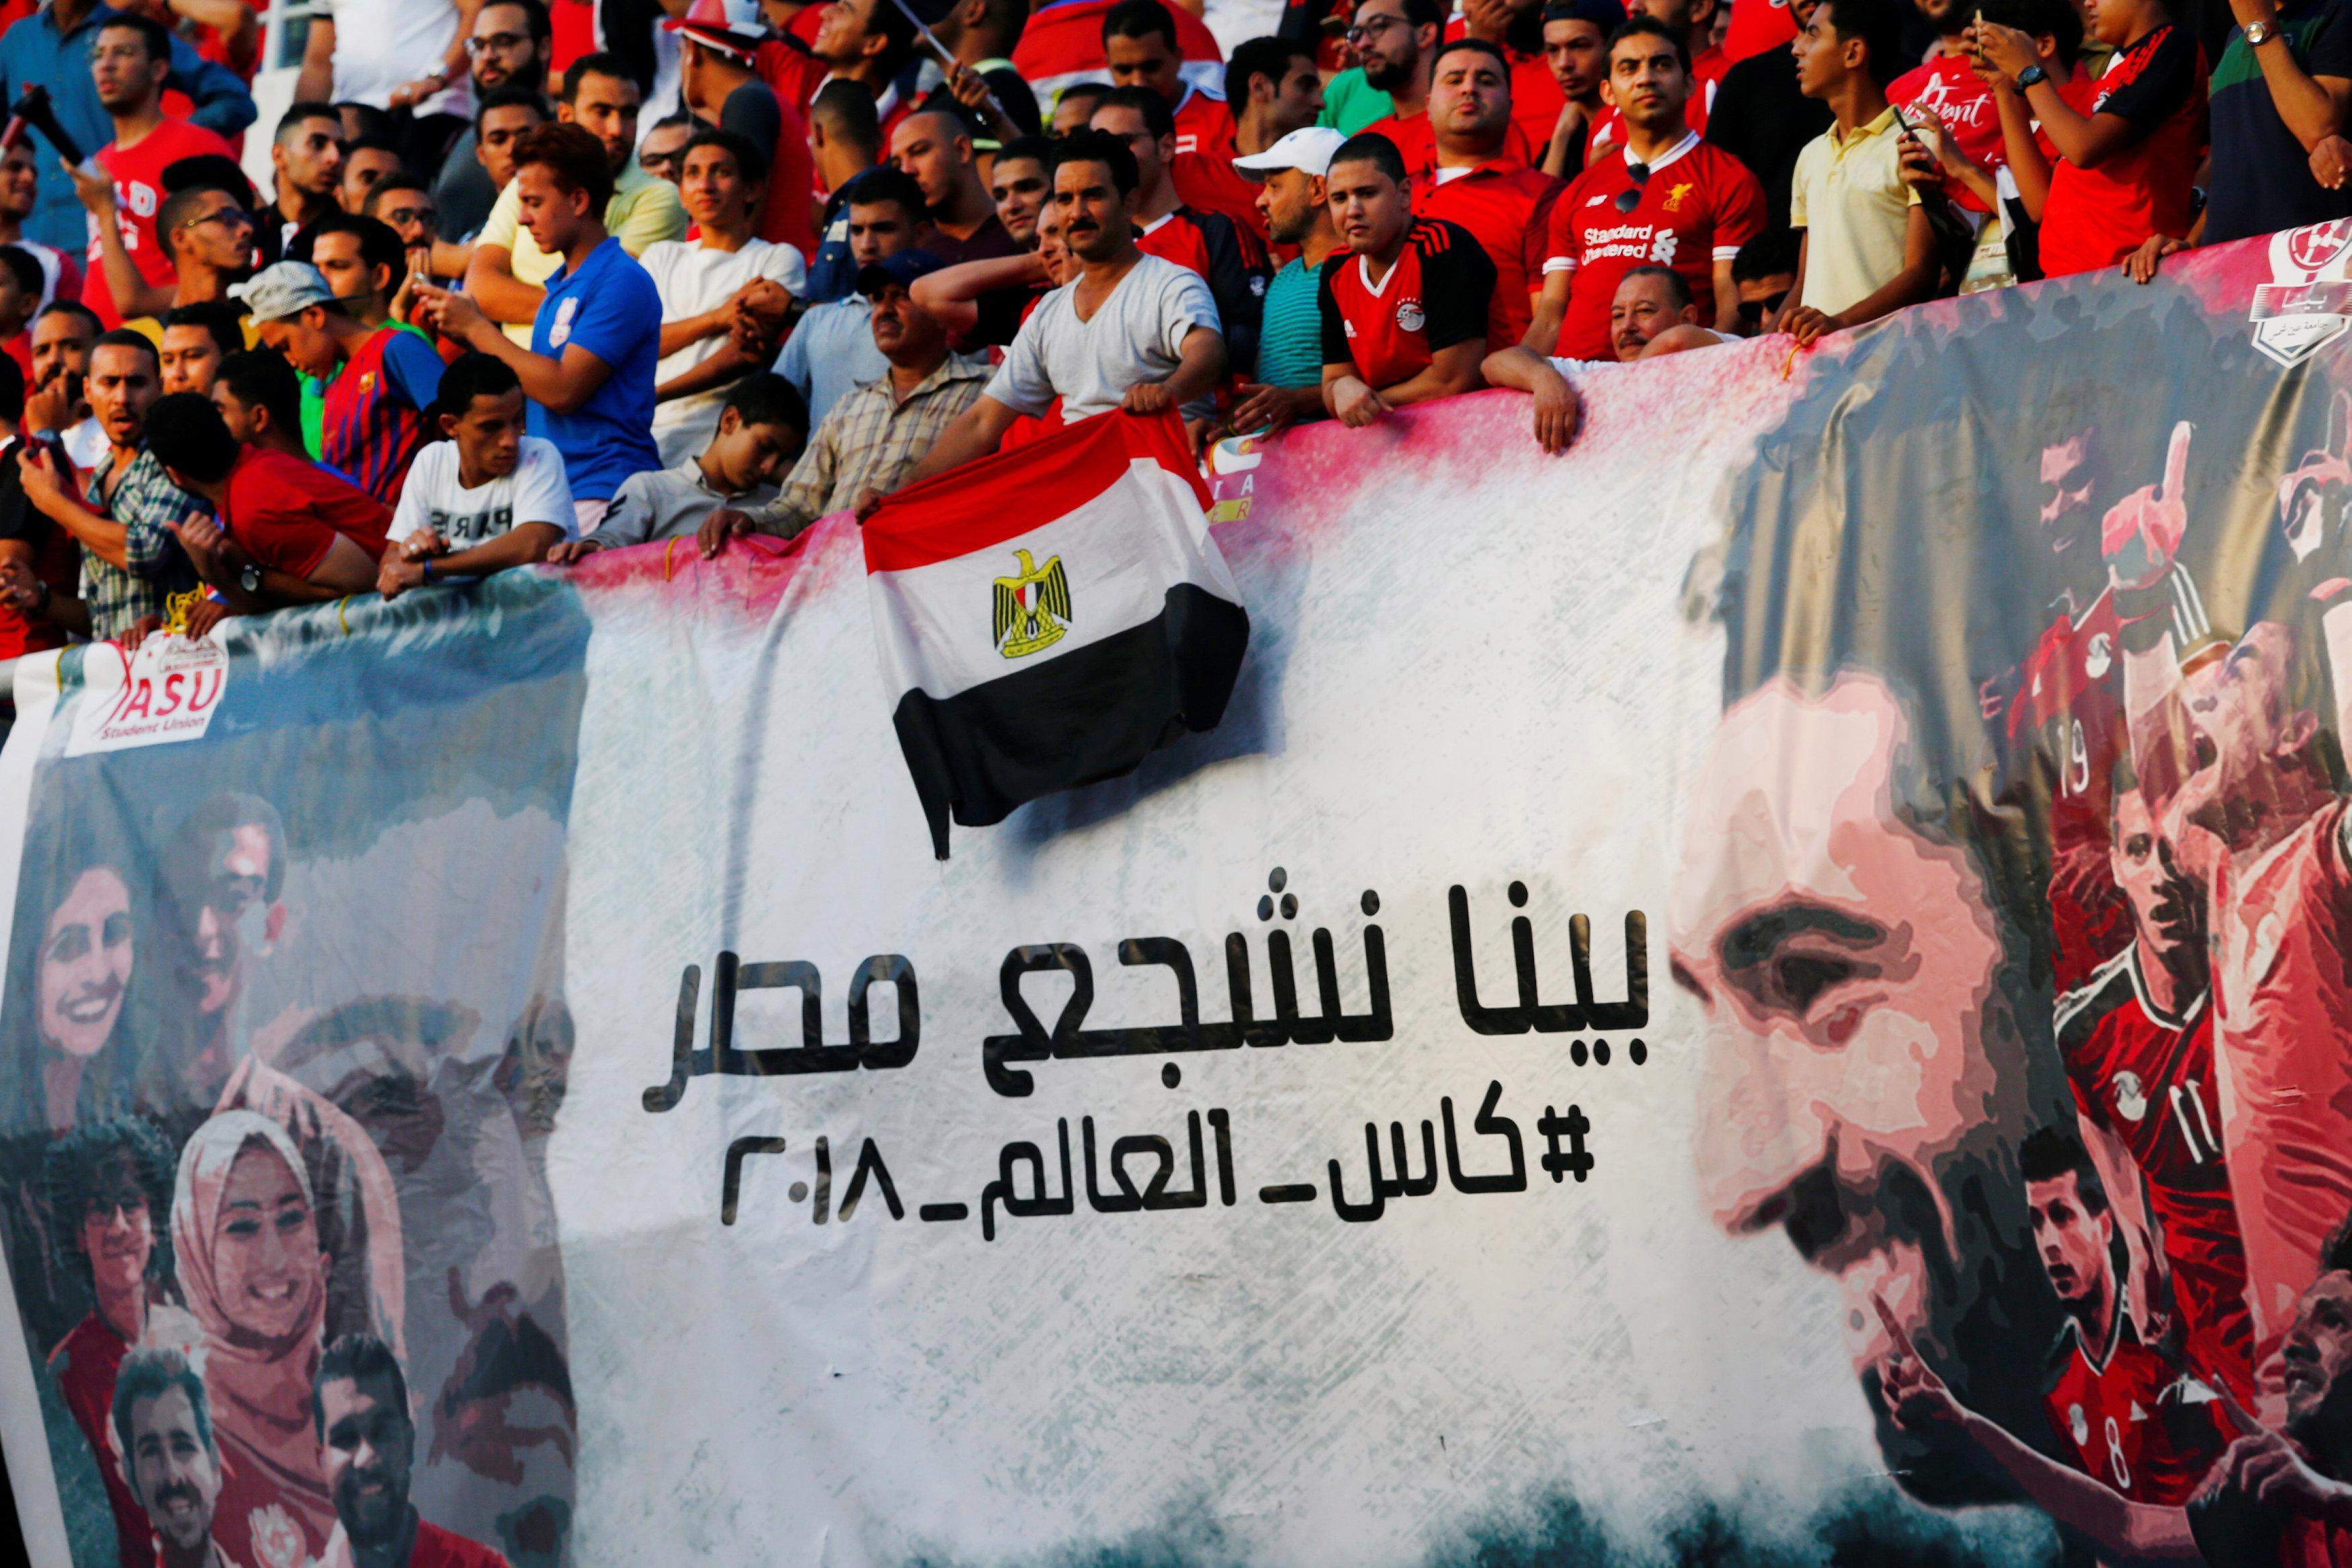 Their Egyptian King